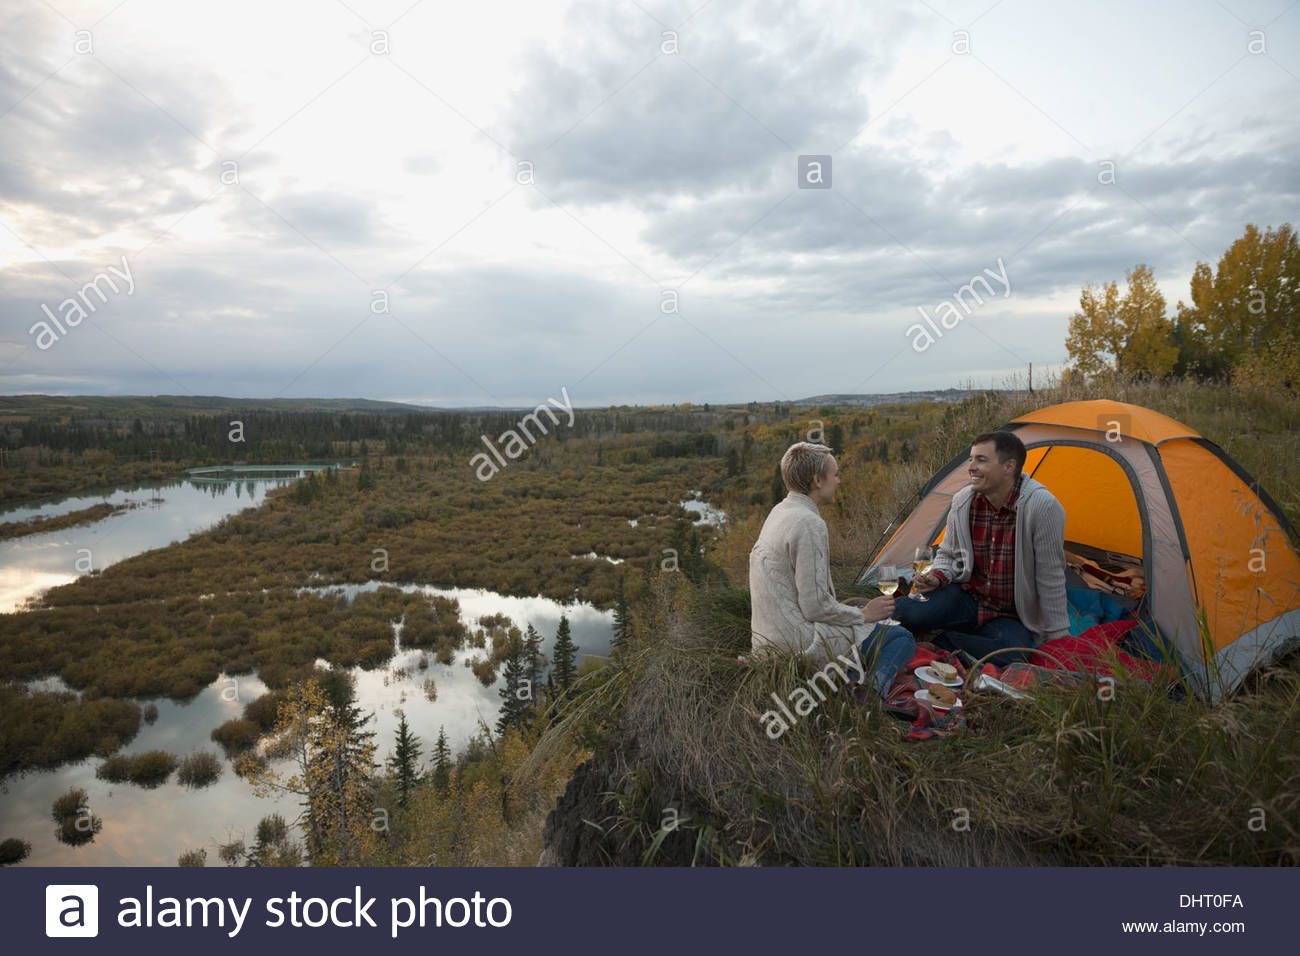 Couple camping by lakeshore - Stock Image